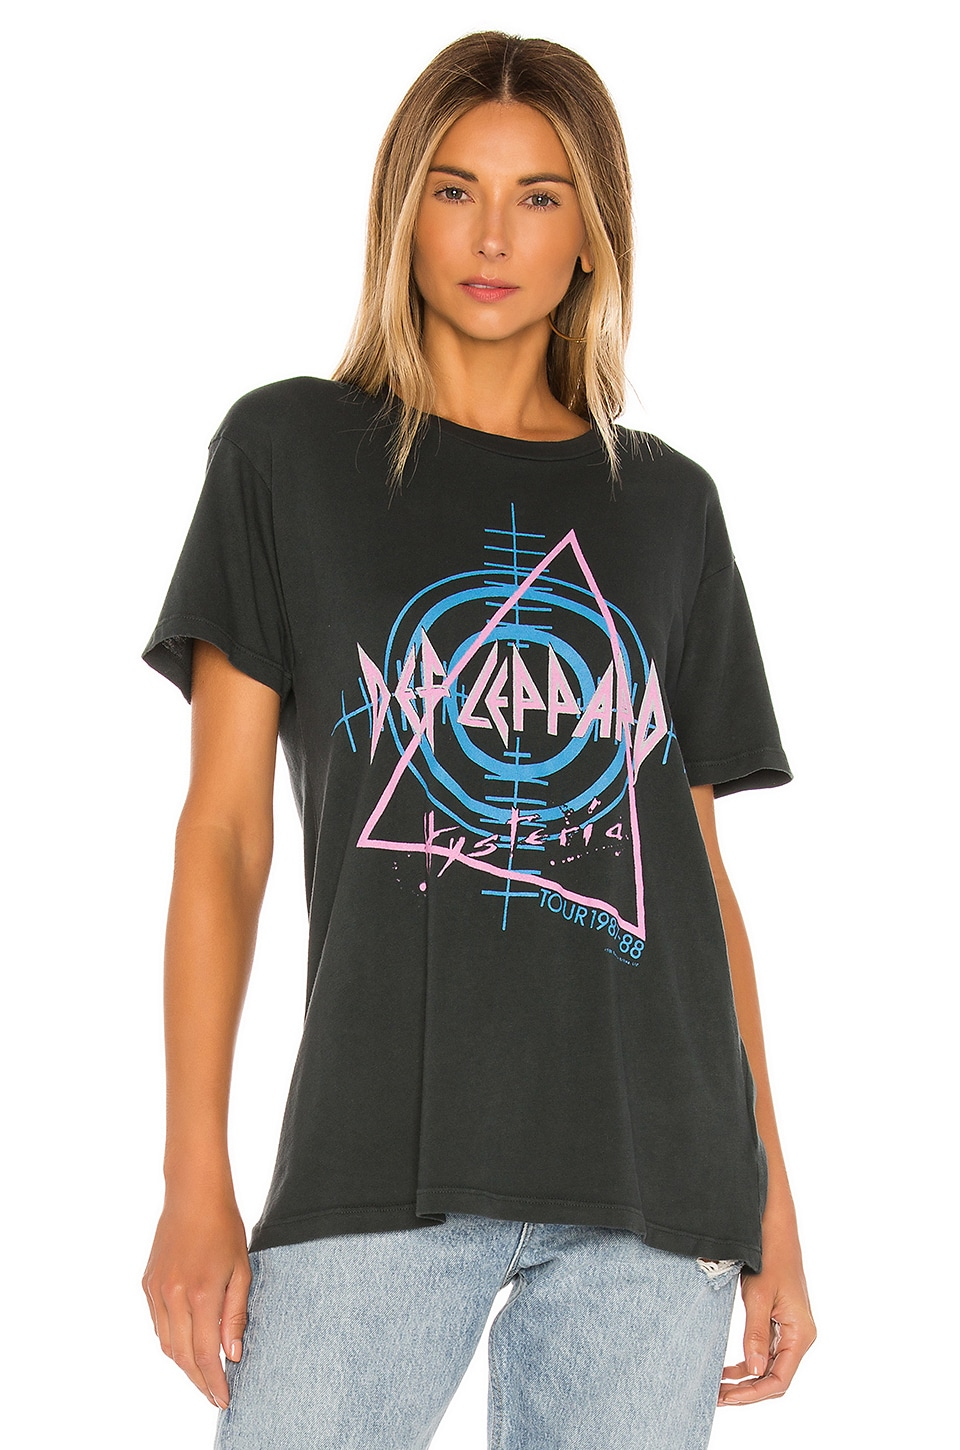 Hysteria Tour Weekend Tee, view 2, click to view large image.